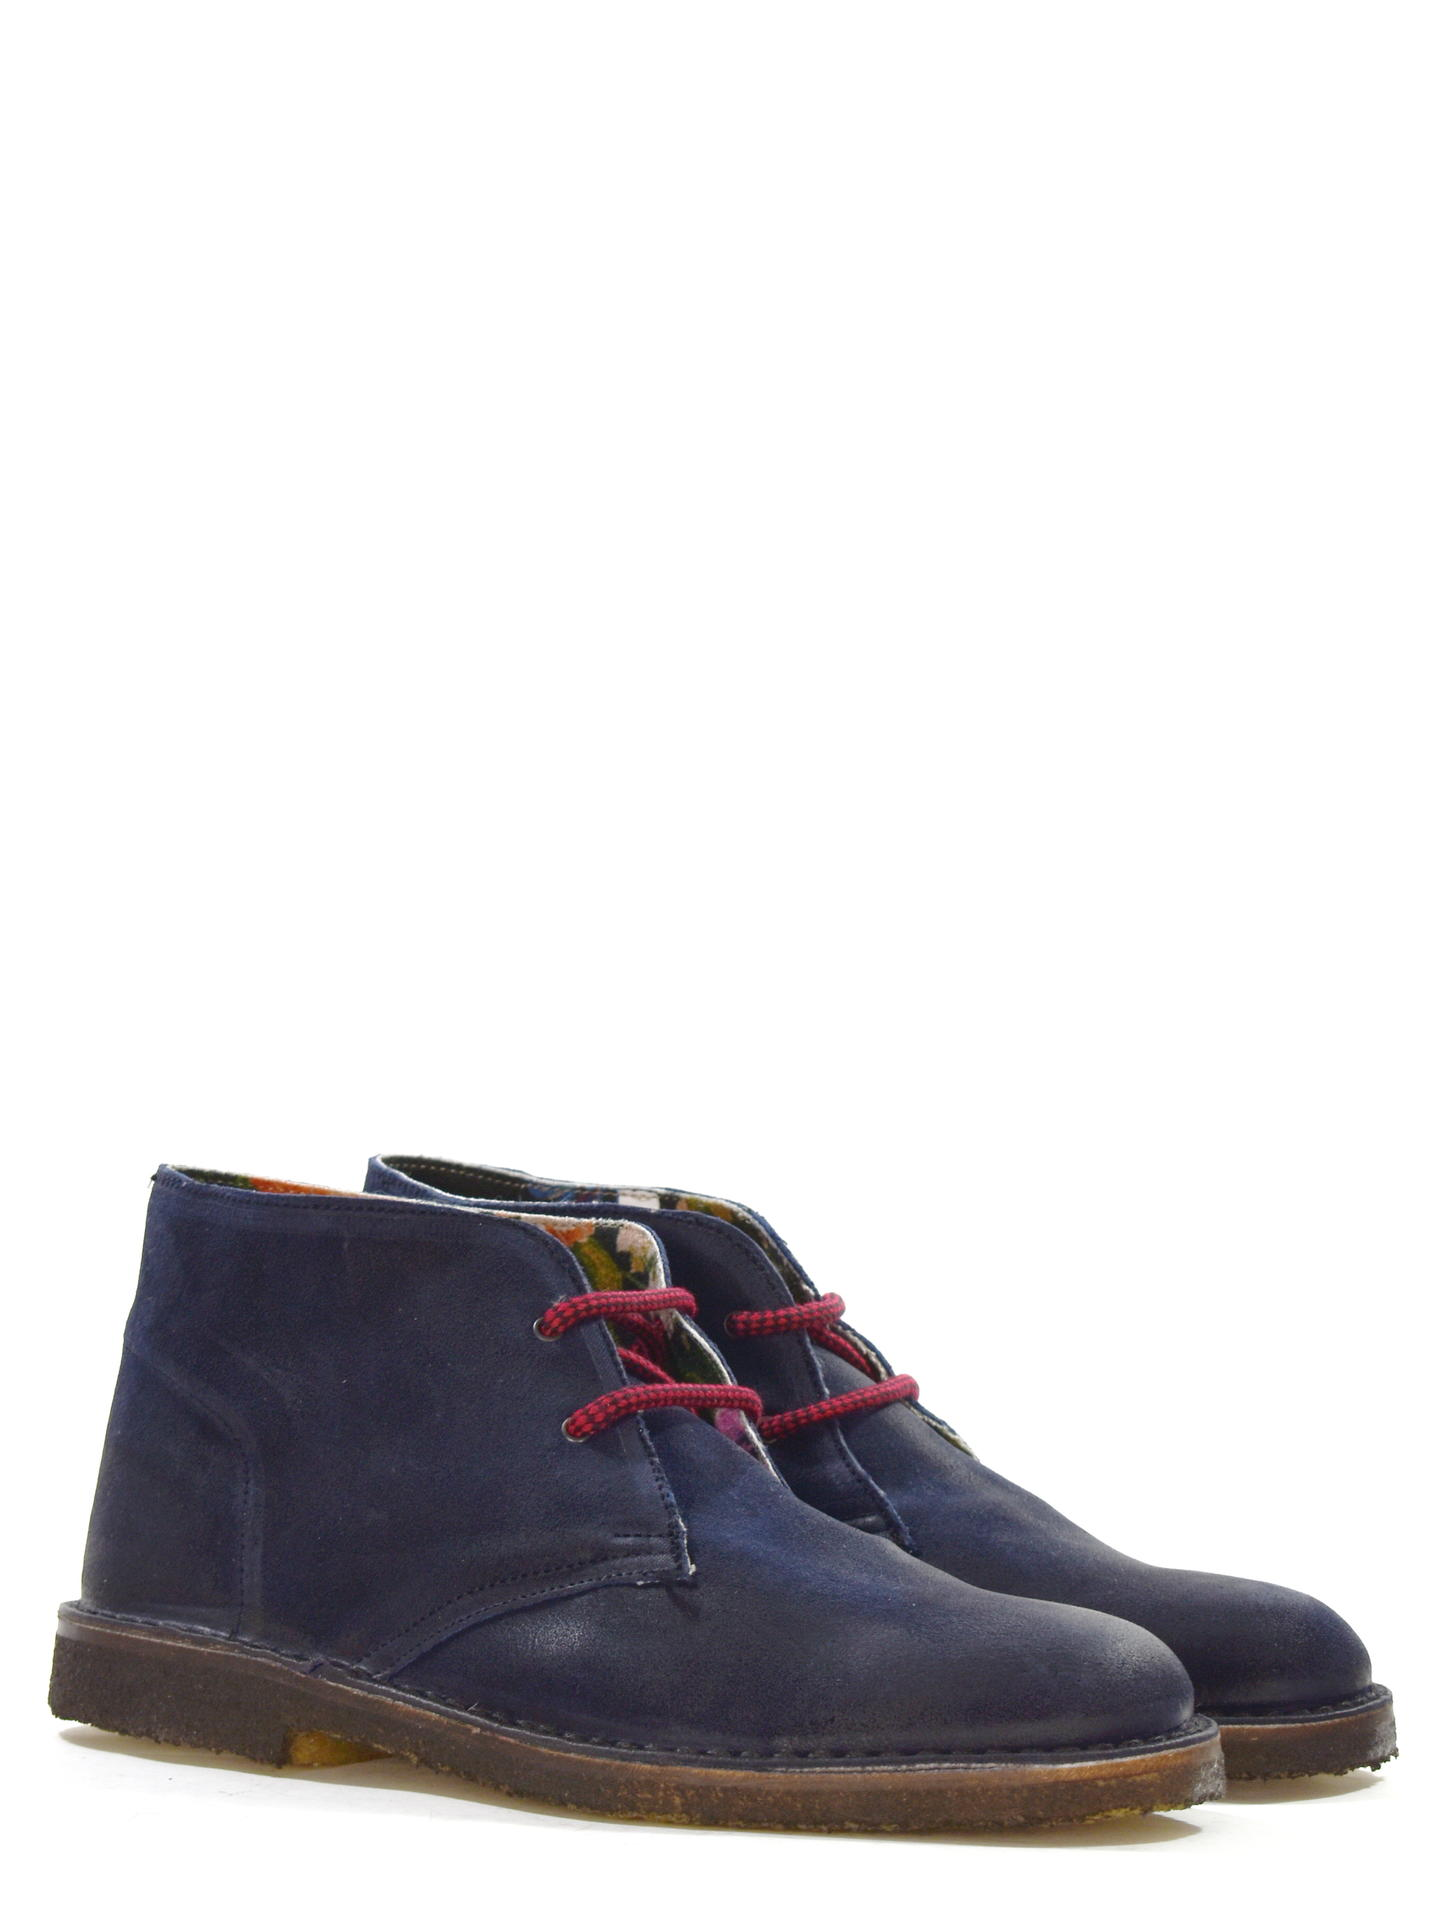 STIVALETTO WEG 144U BLUE